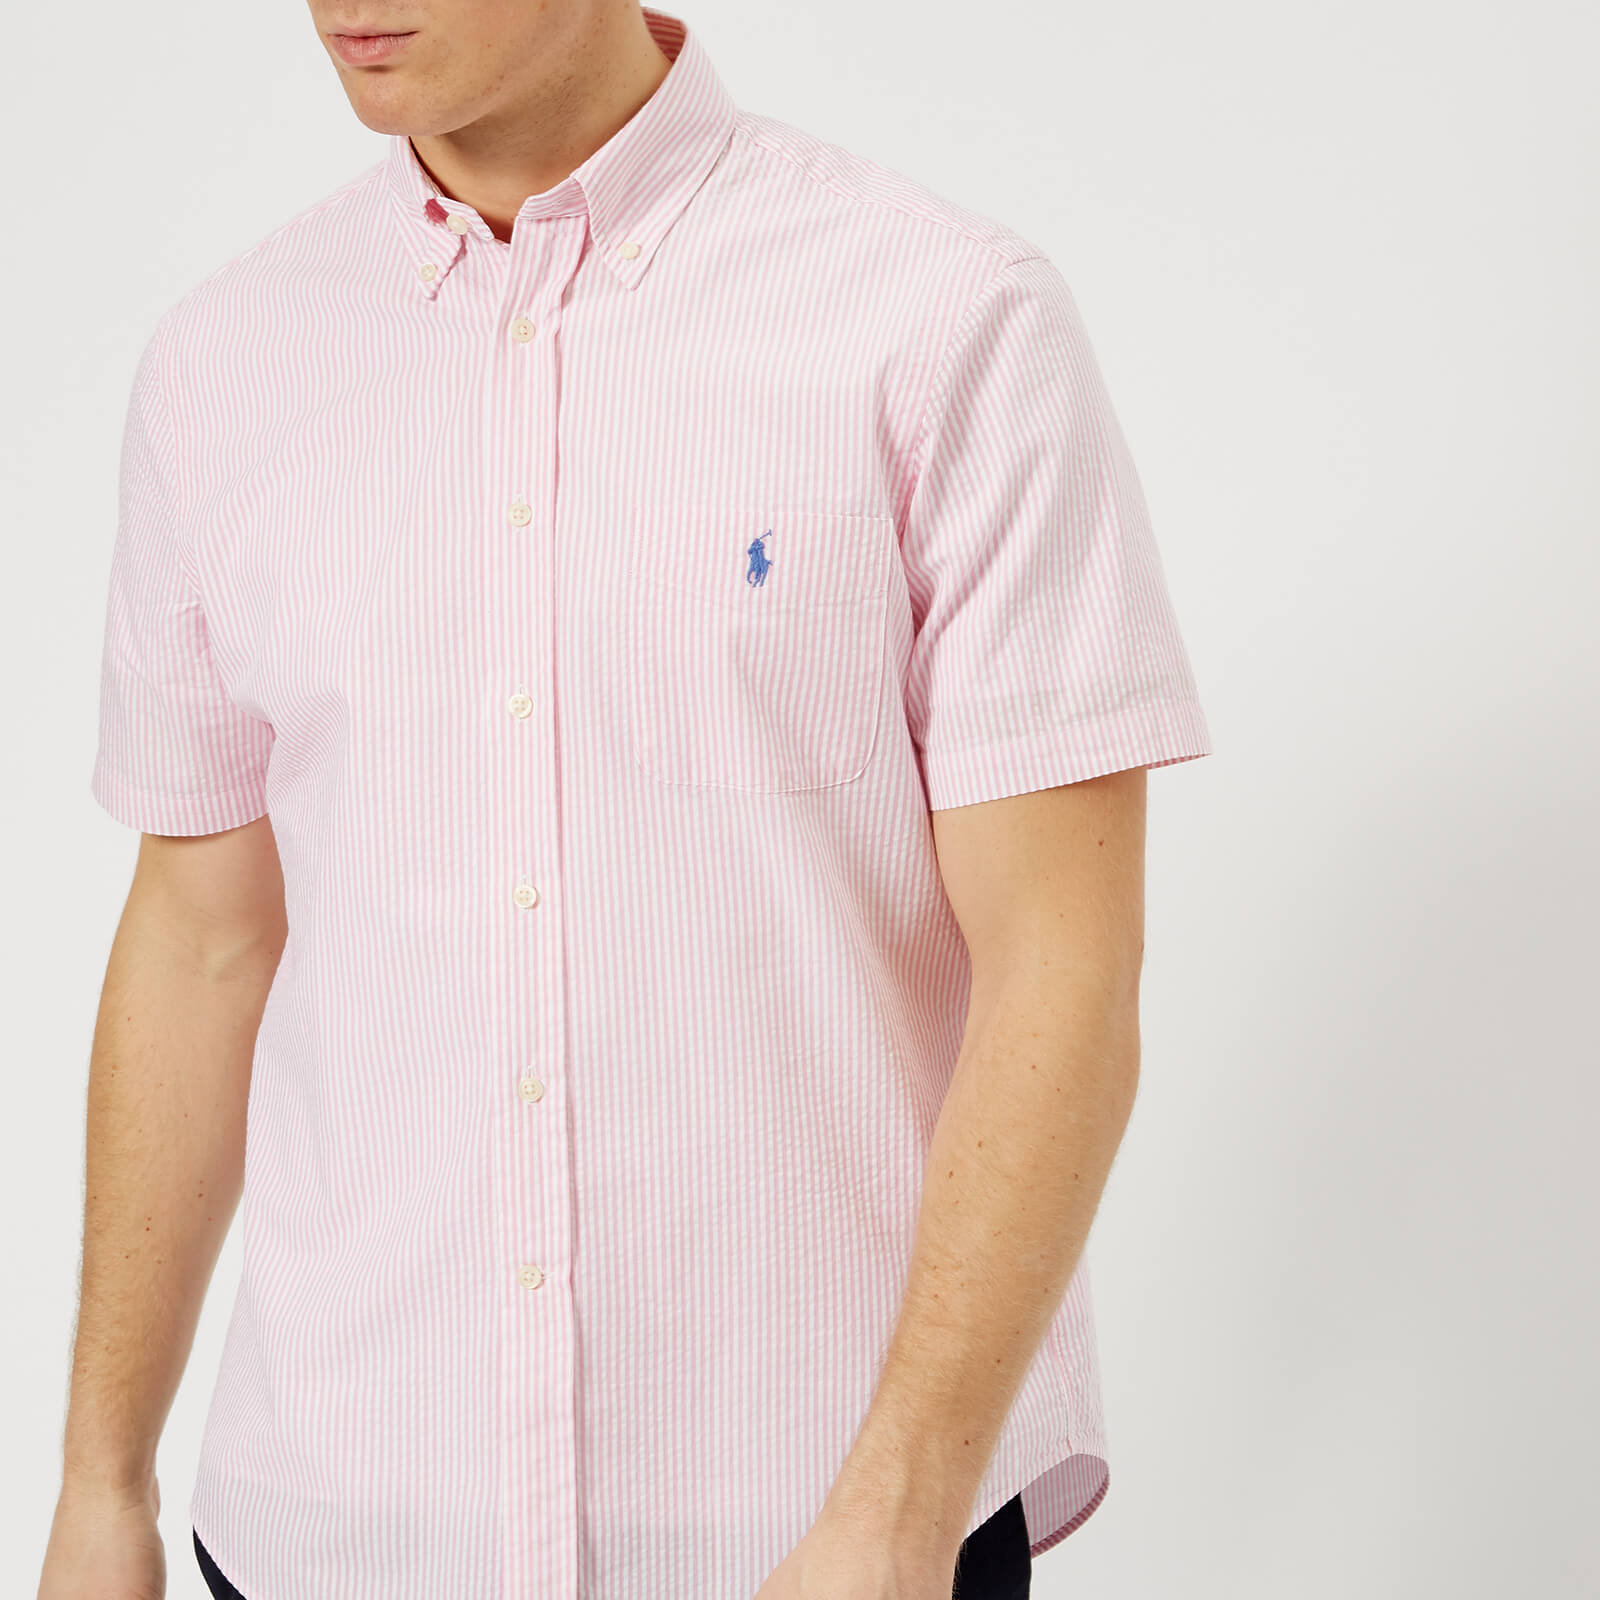 163432c997 Polo Ralph Lauren Men's Seersucker Stripe Shirt - Pink/White - Free UK  Delivery over £50